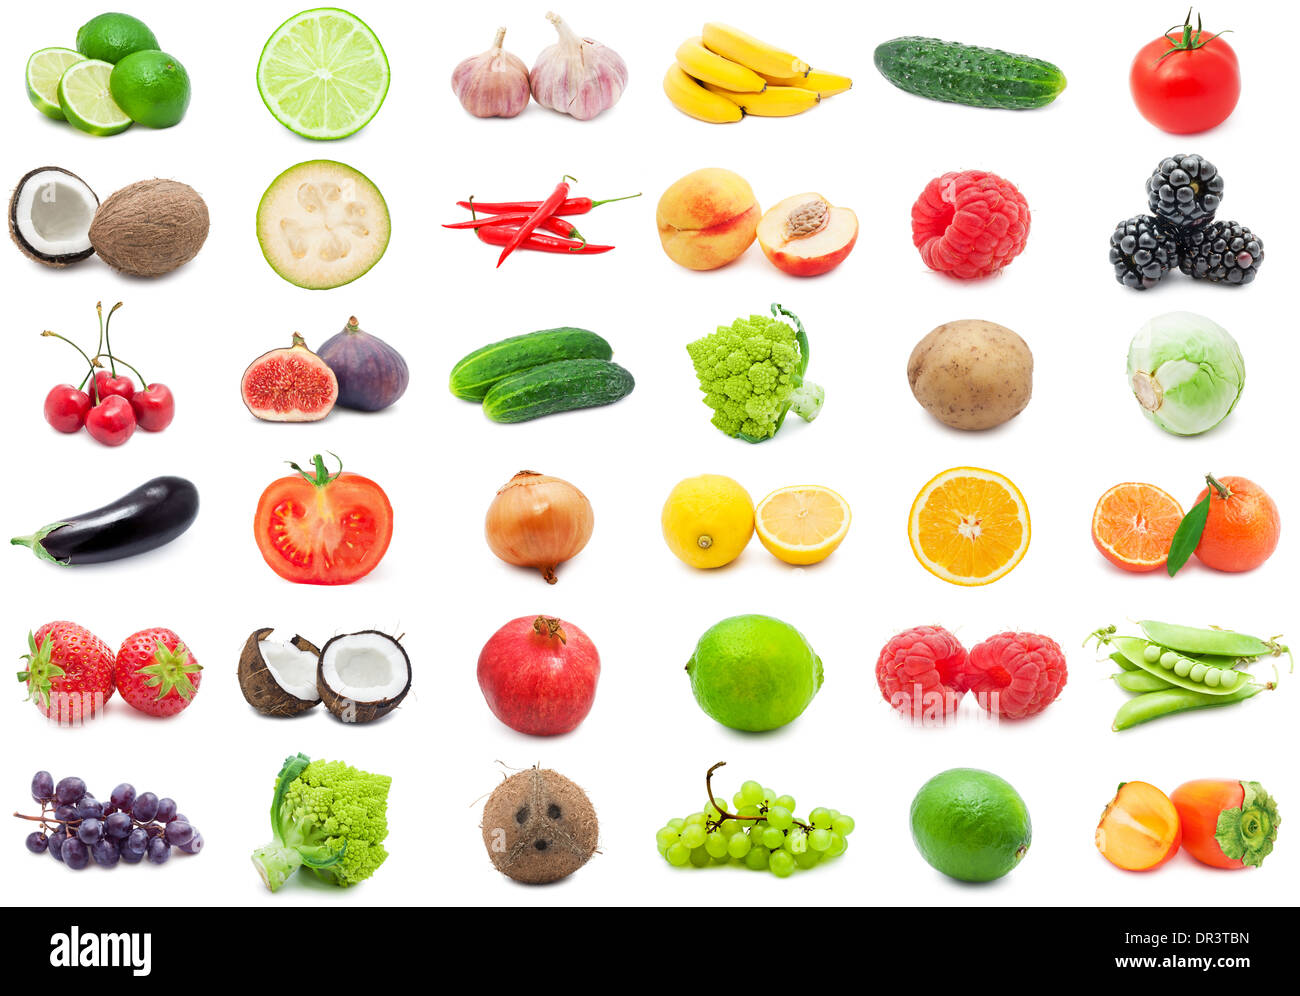 Fruits and Vegetables - Stock Image